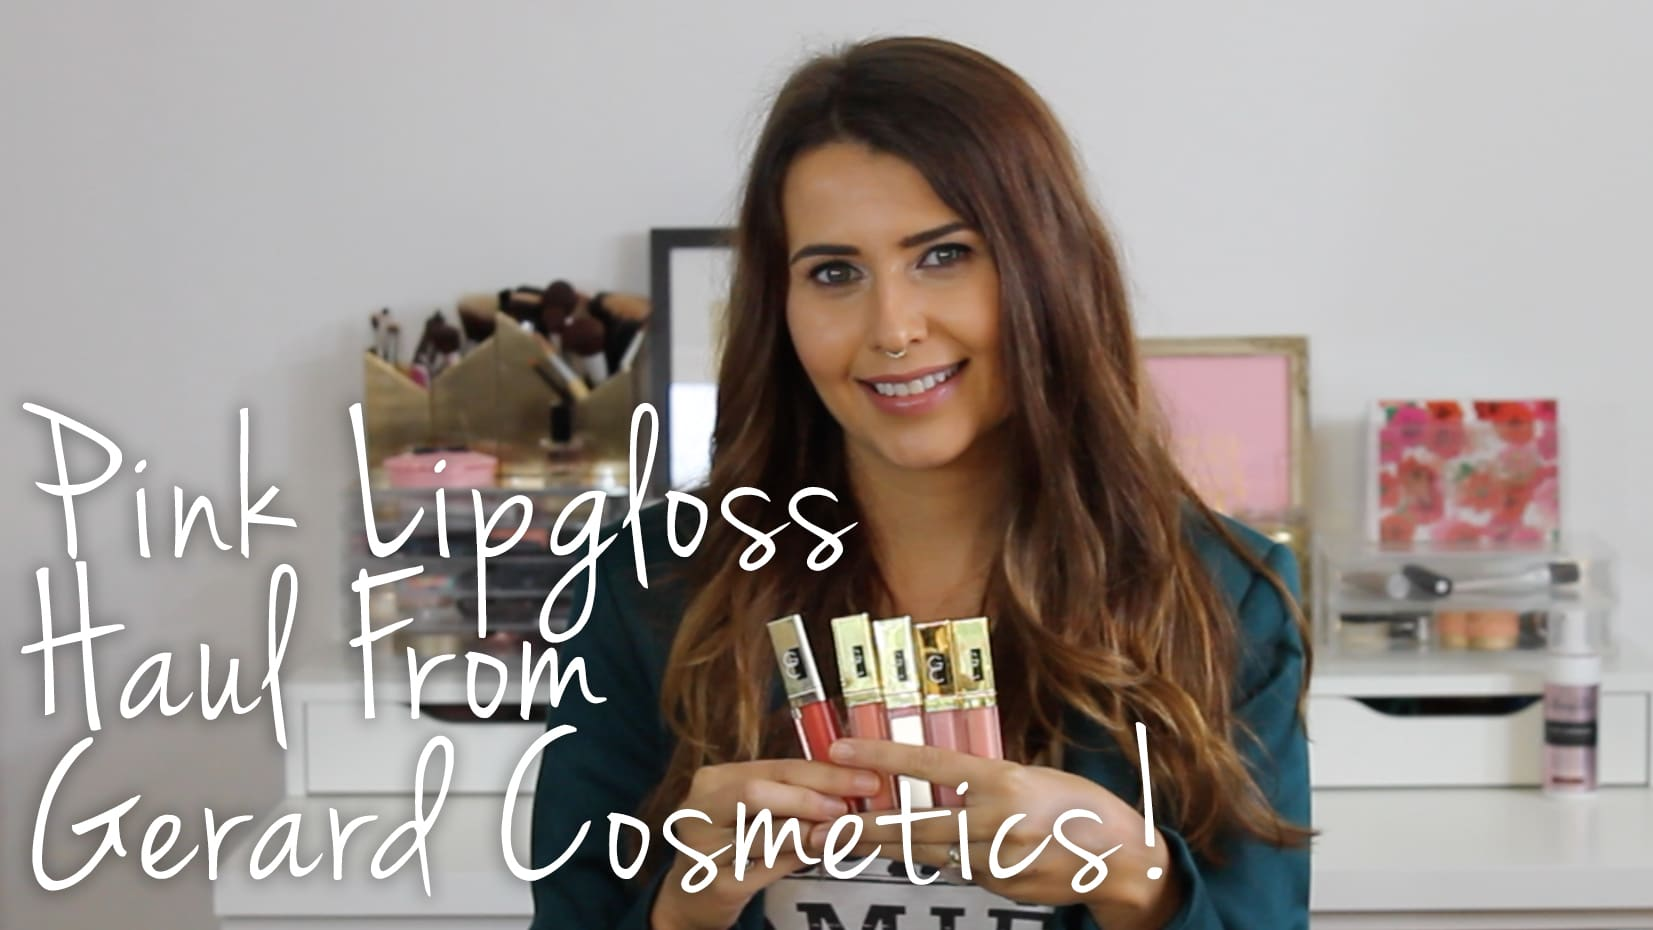 Gerard Cosmetics Pink & Coral Lip Gloss Haul & Swatches Video